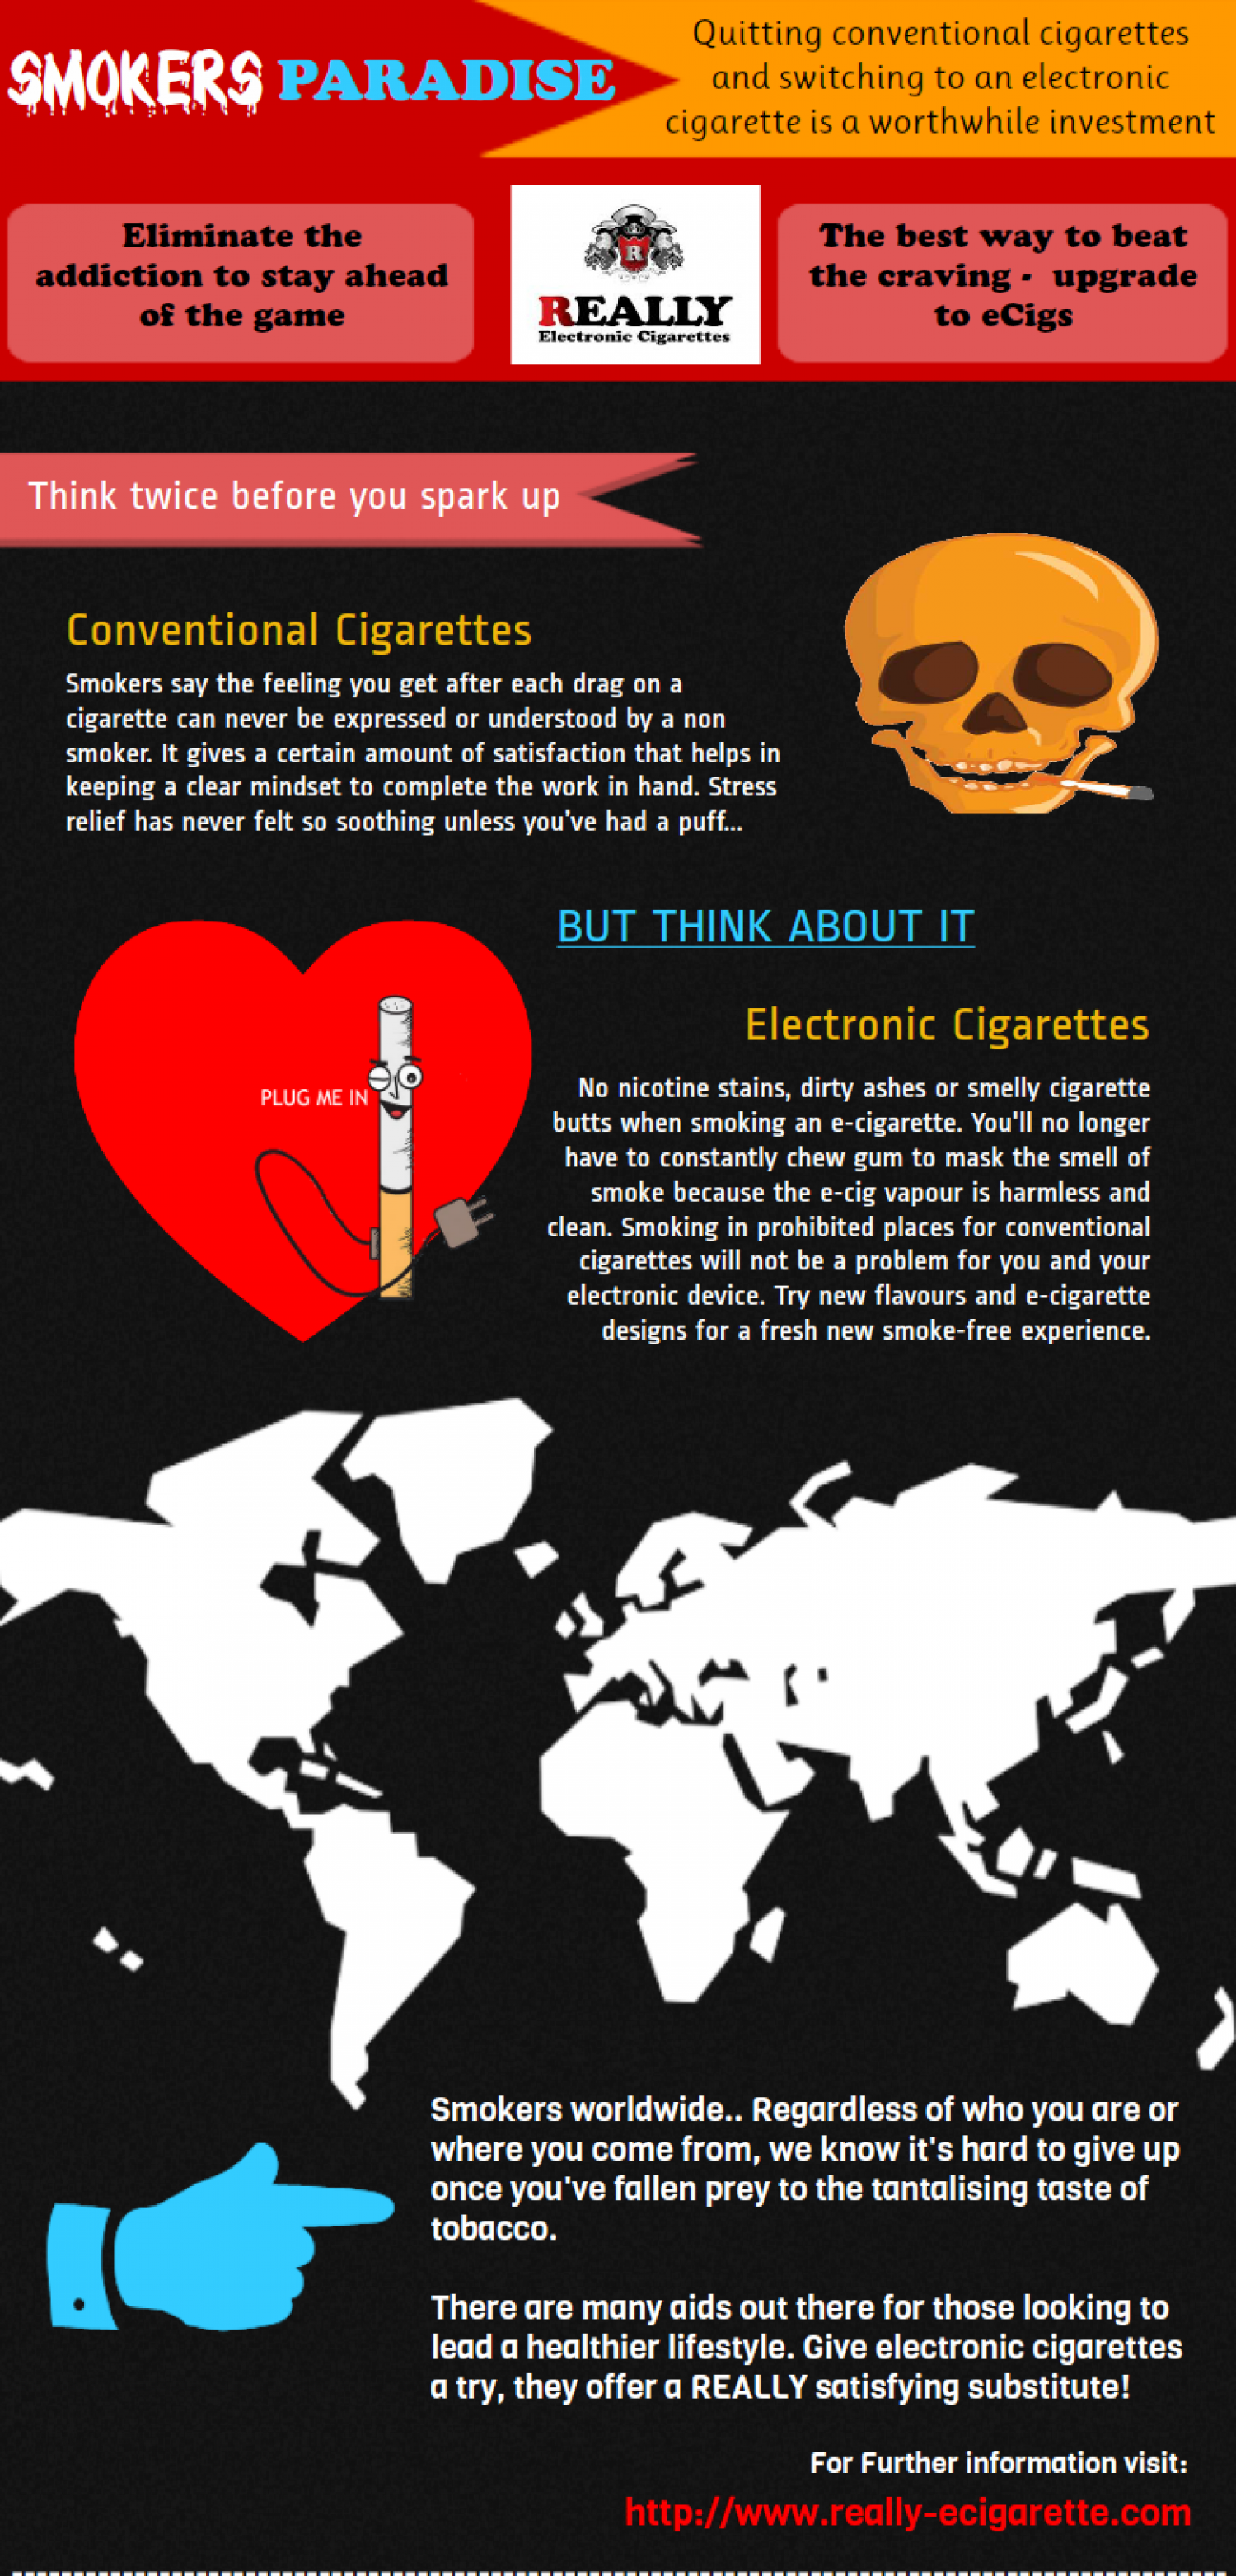 Smokers Paradise Infographic